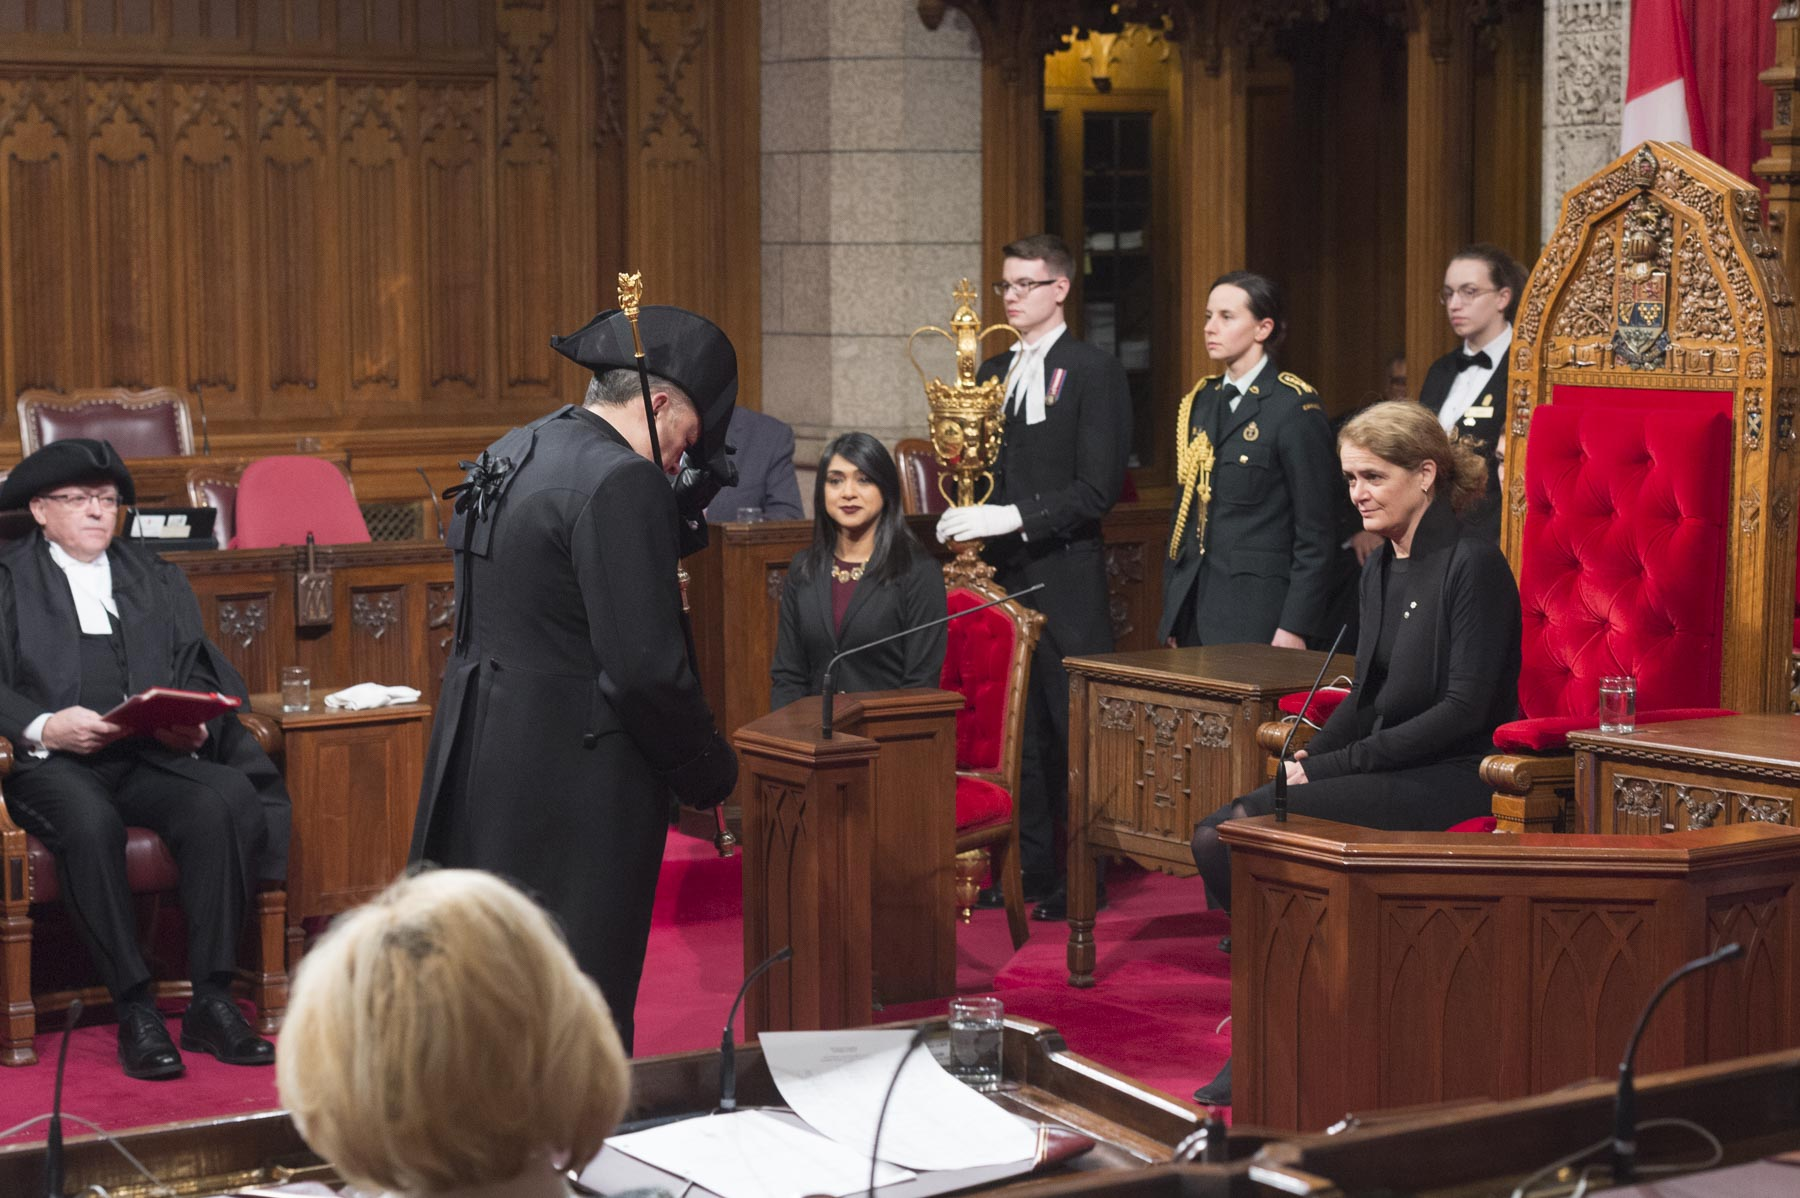 A total of eight bills were granted Royal Assent by the Governor General. Royal Assent is therefore the last stage in the legislative process and assembles the three constituent entities of Parliament (Crown, Senate, House of Commons).